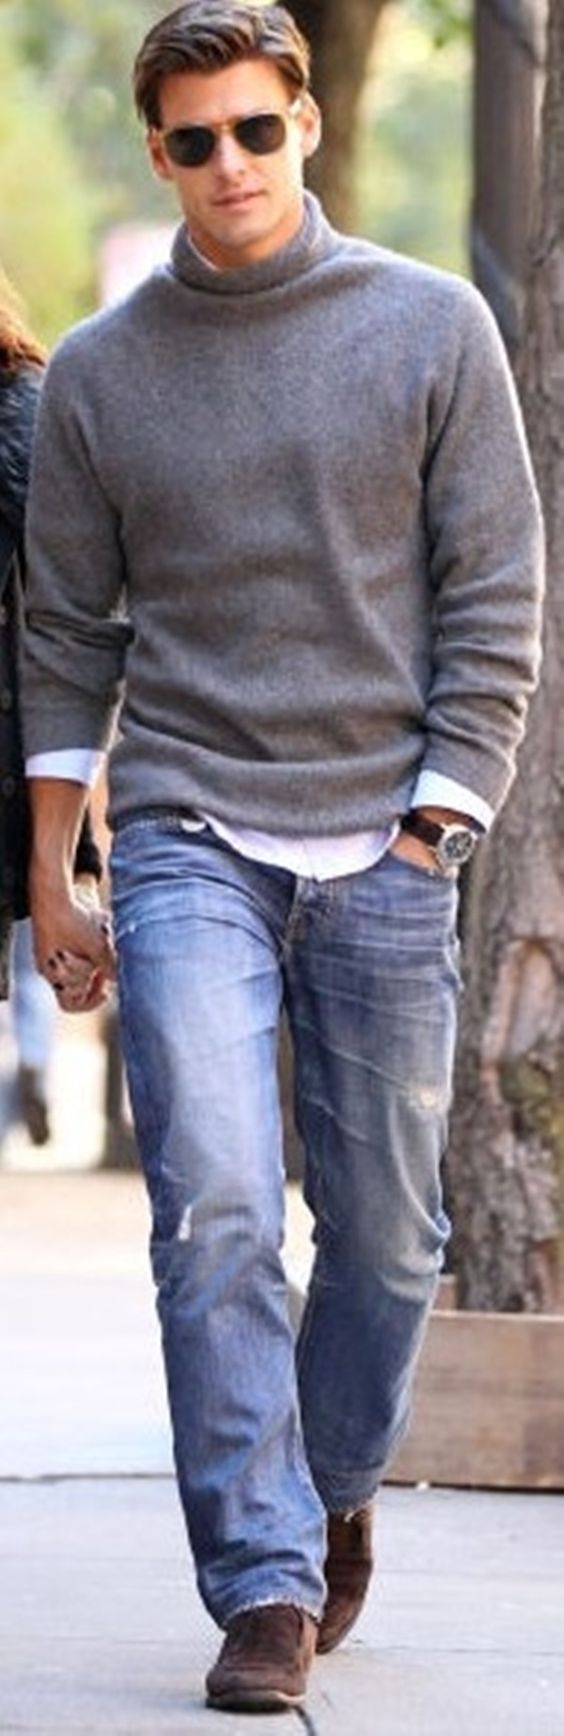 Image For Fashion For 50 Year Old Men Rugged Mens Fashion Casual Mens Street Style Mens Outfits